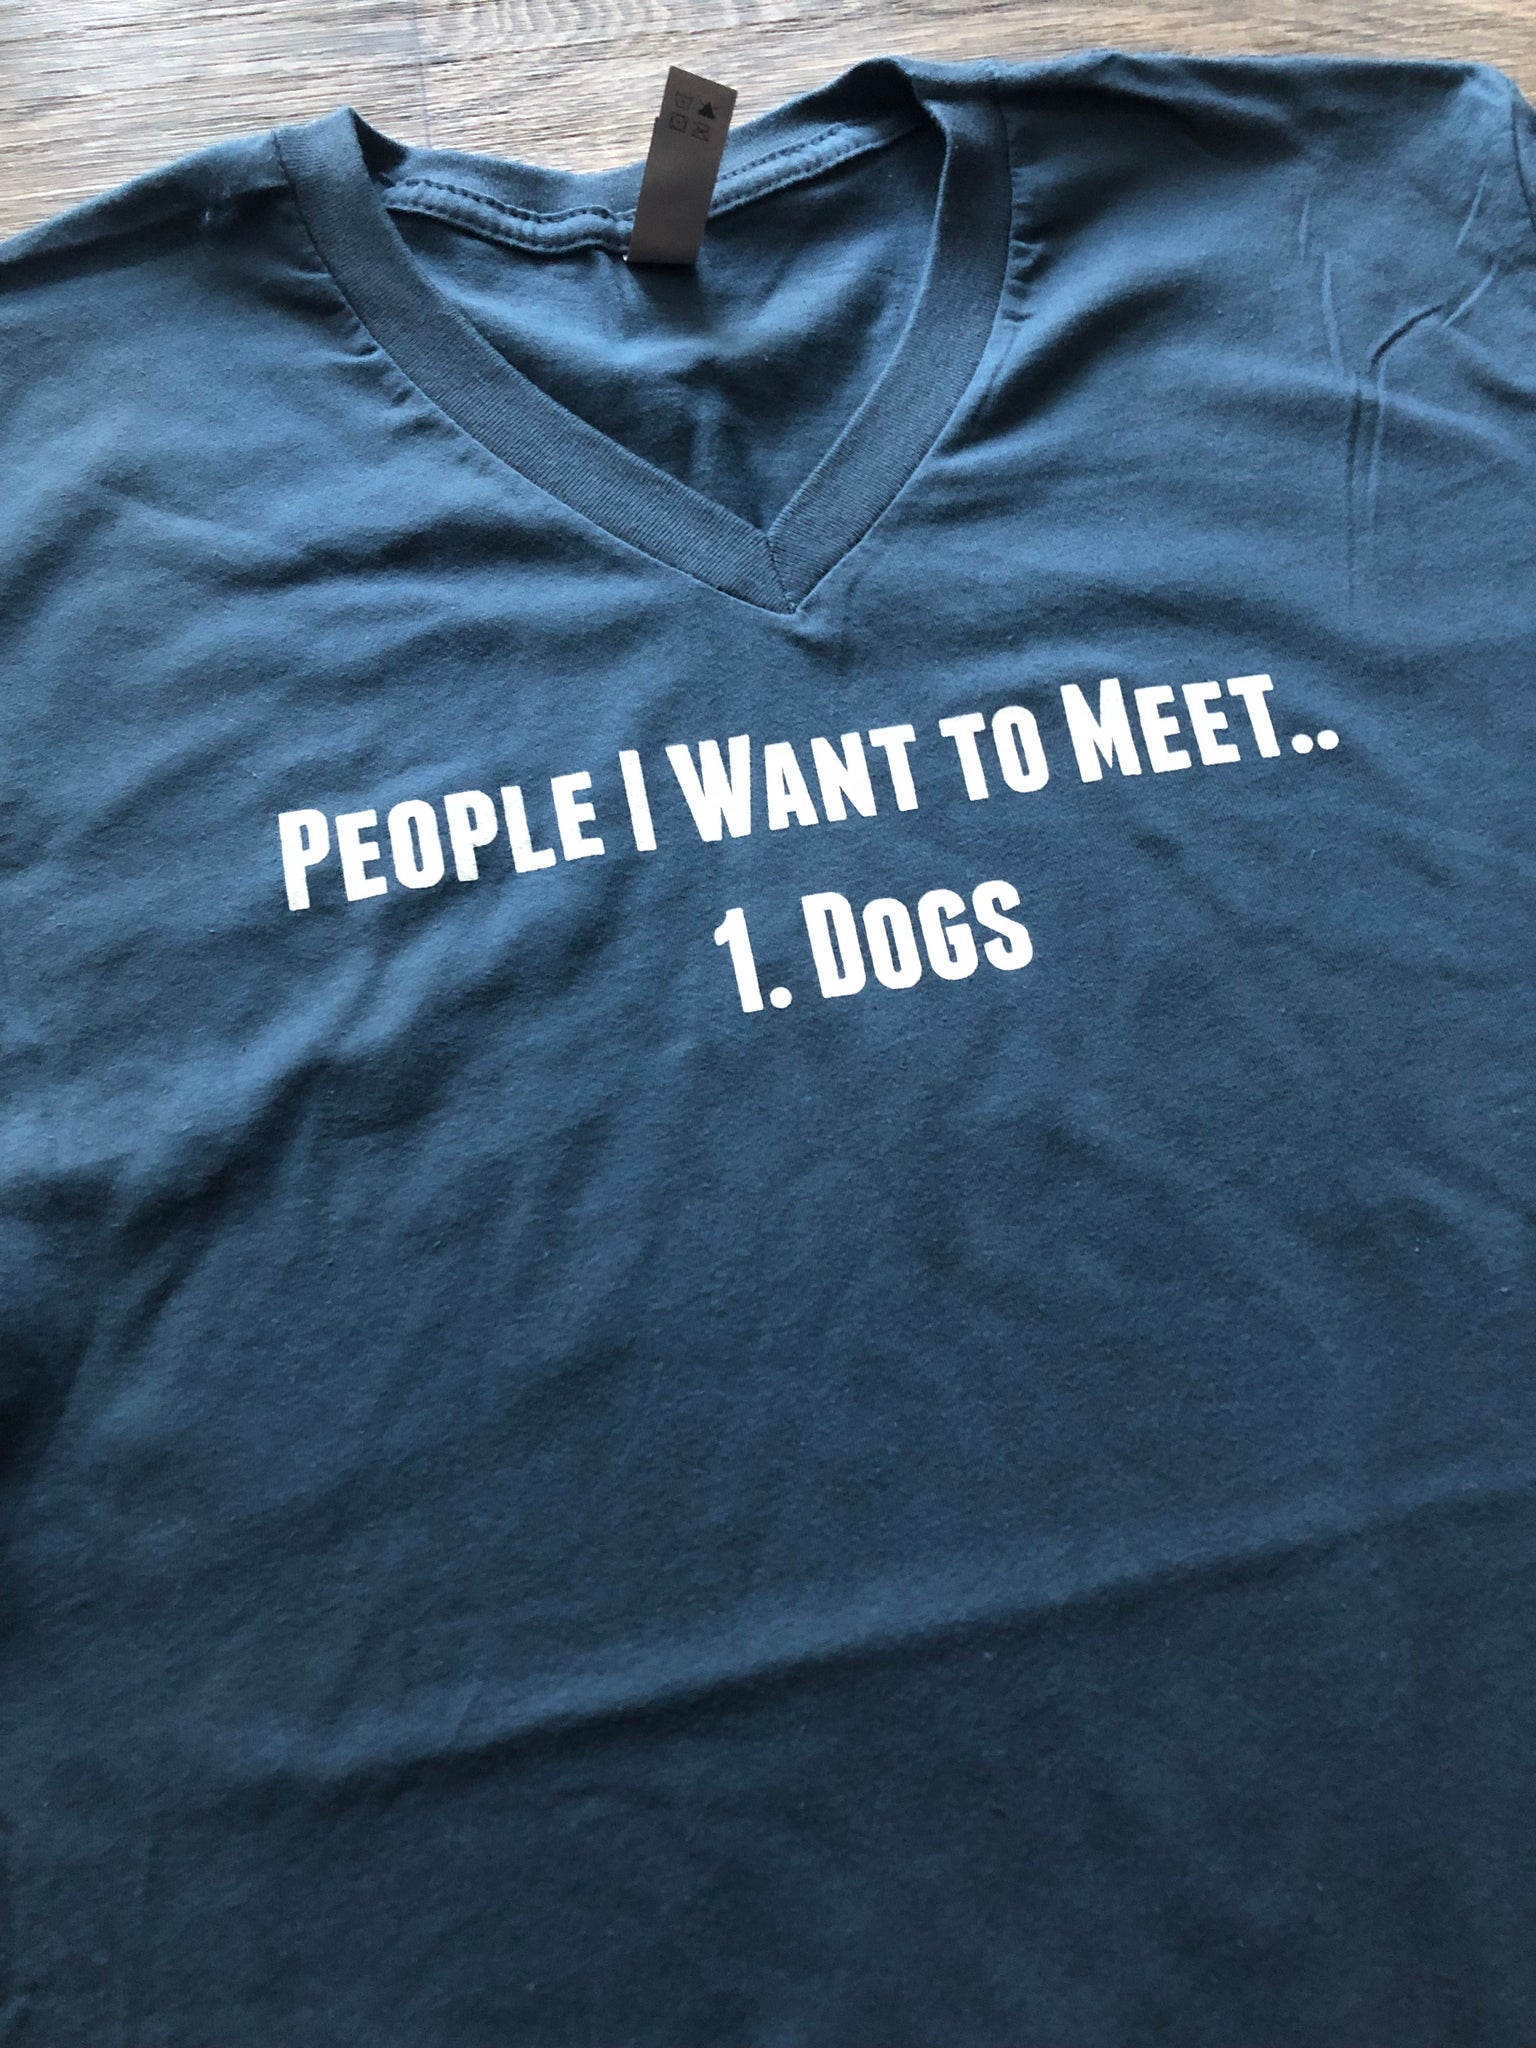 People I Want to Meet 1: Dogs